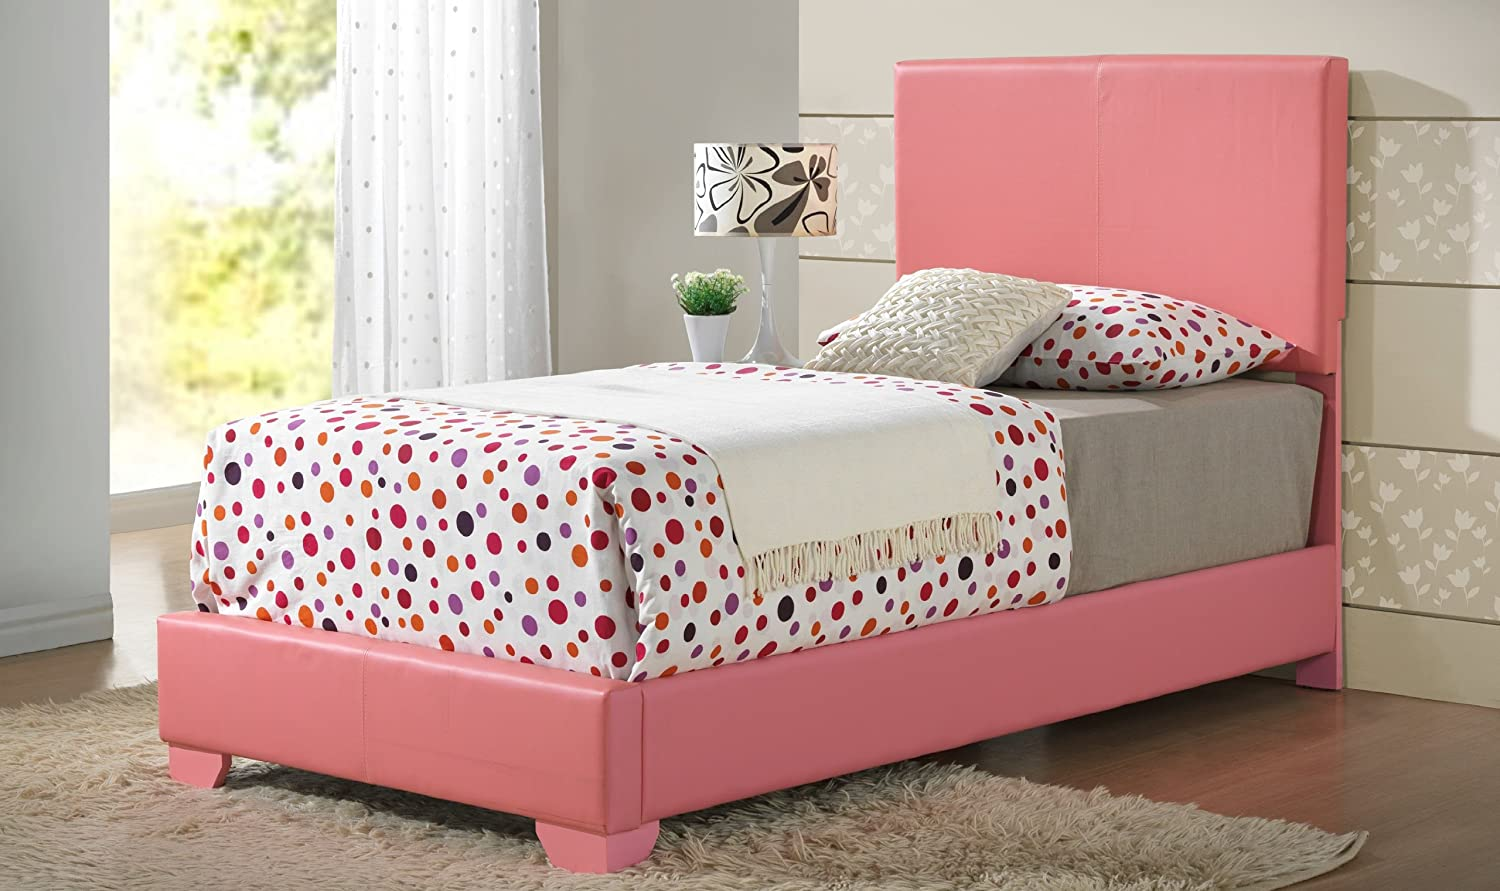 Amazon com glory furniture pink full size modern headboard leather look upholstered bed 1880 kitchen dining